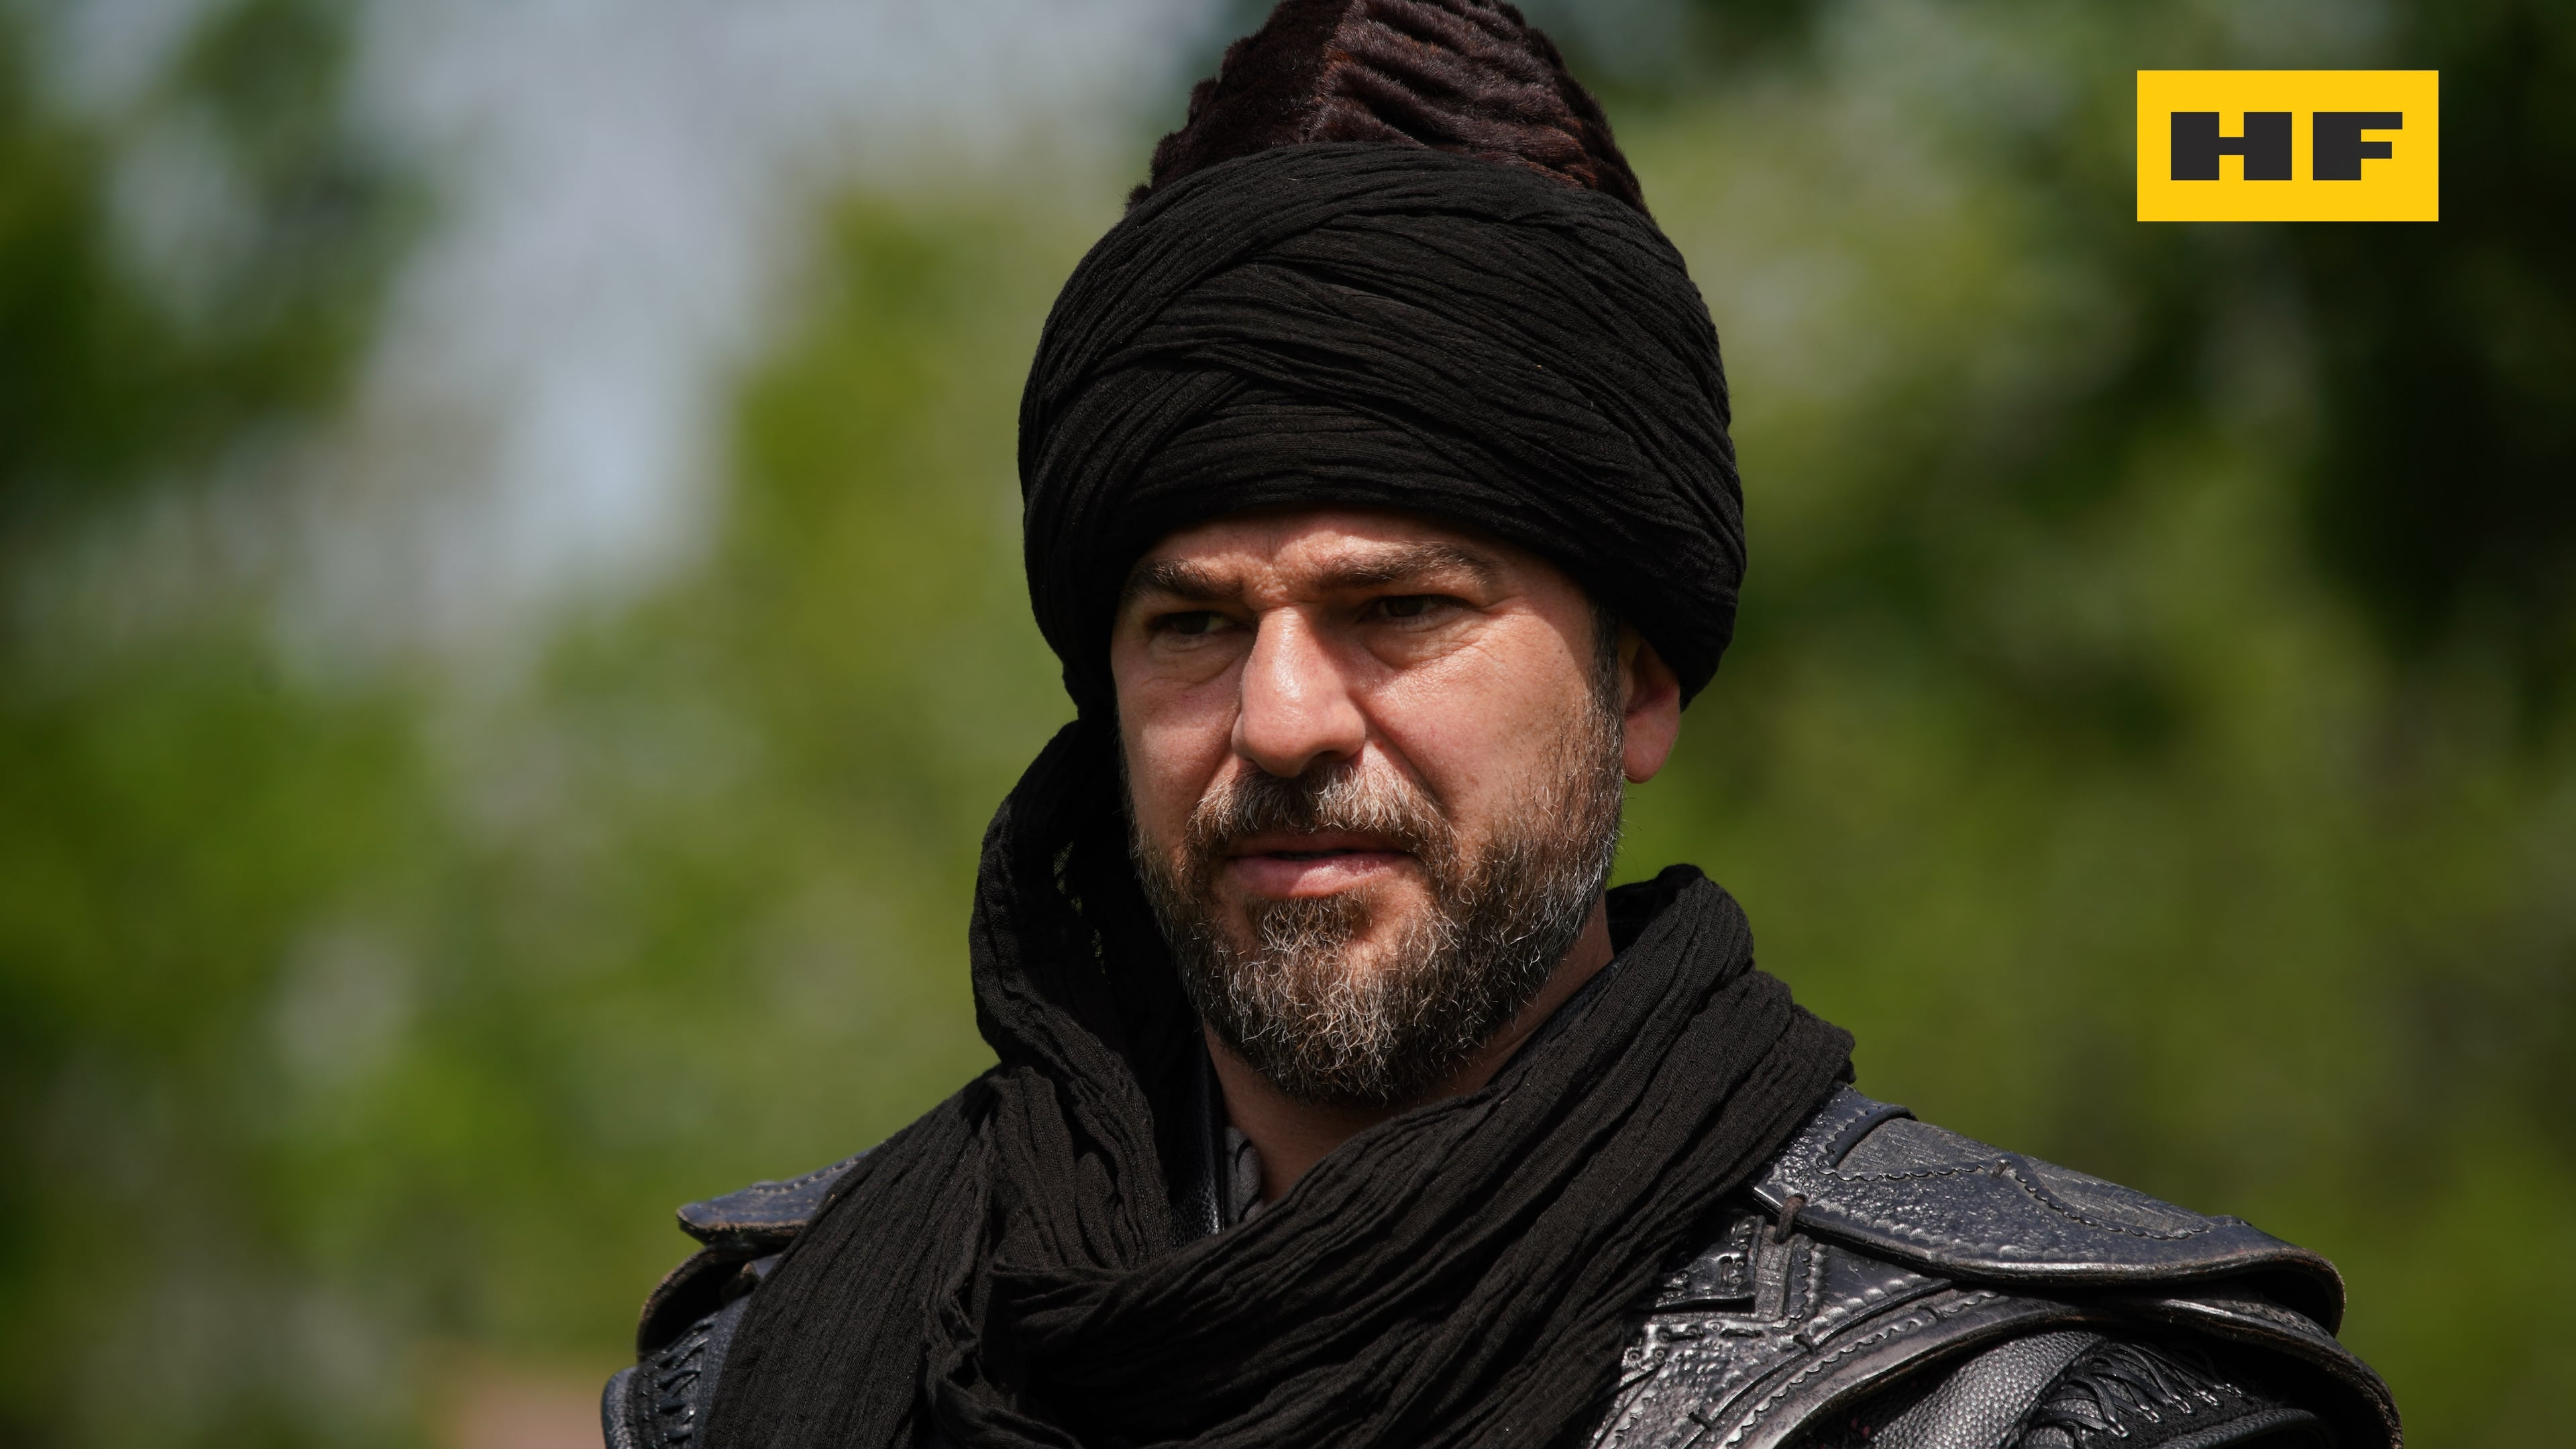 Dirilis Ertugrul Season 5 Episode 28